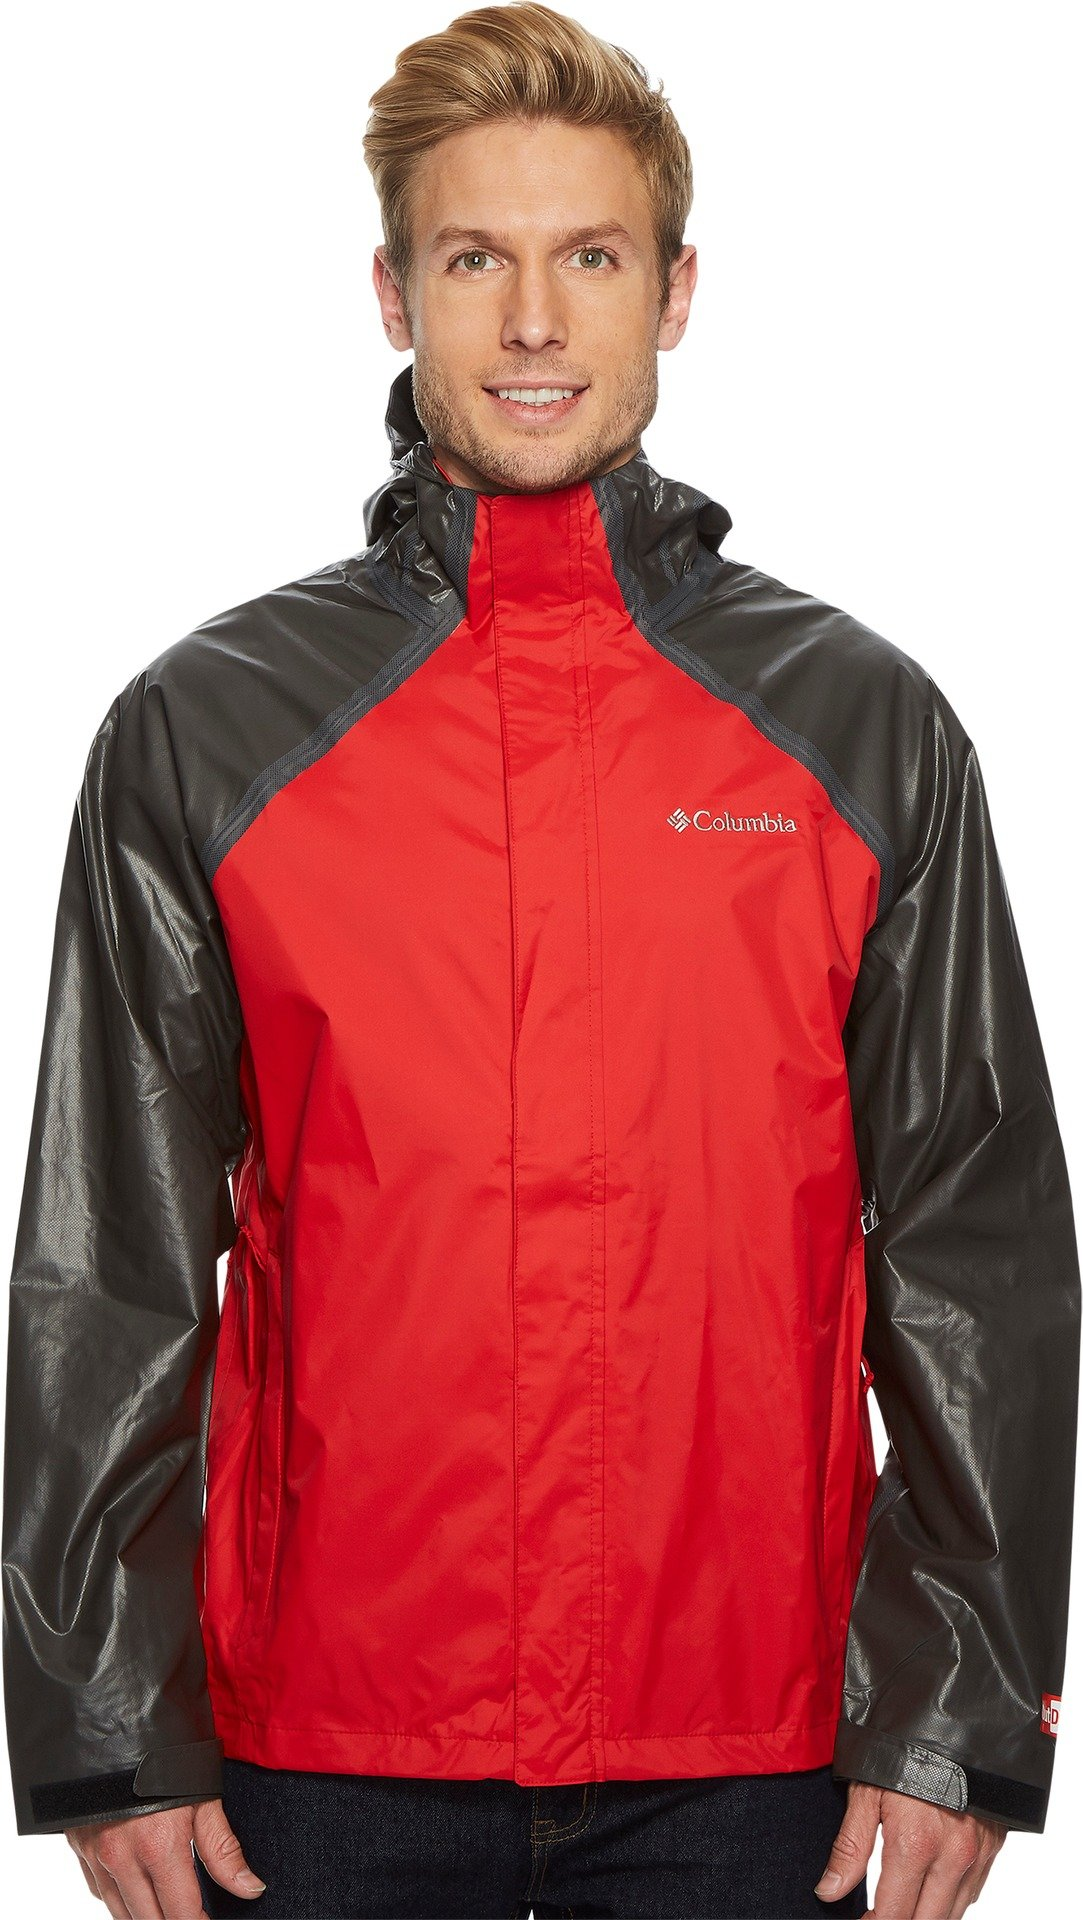 Columbia Men's Outdry Hybrid Jacket Red Spark/Black Medium by Columbia